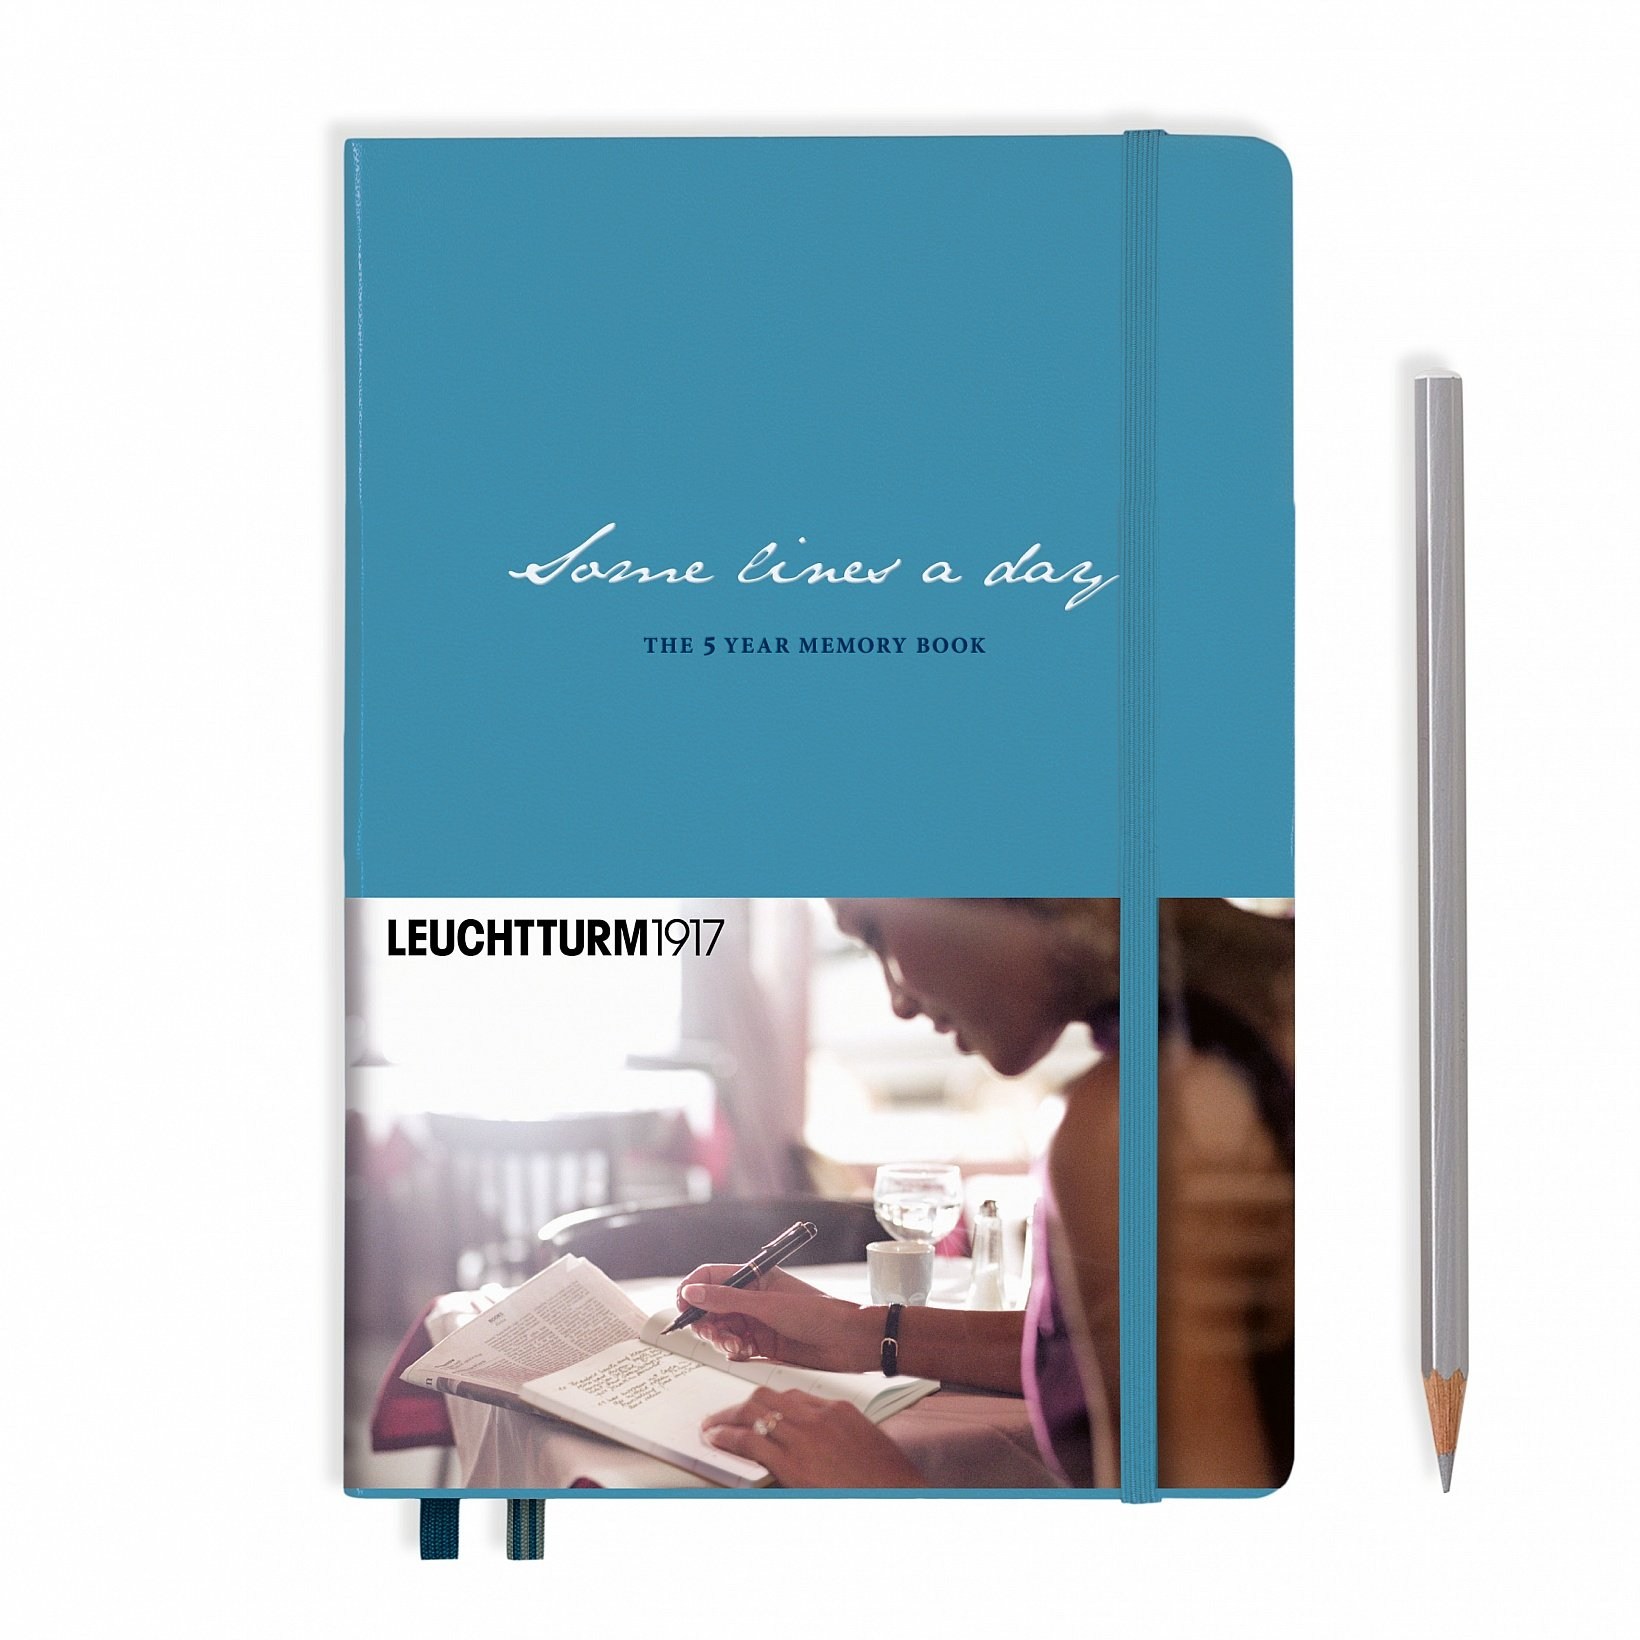 Leuchtturm1917 Some Lines A Day 5 Year Memory Book Journal - Medium (A5) 5.71'' x 8.27'' - Nordic Blue